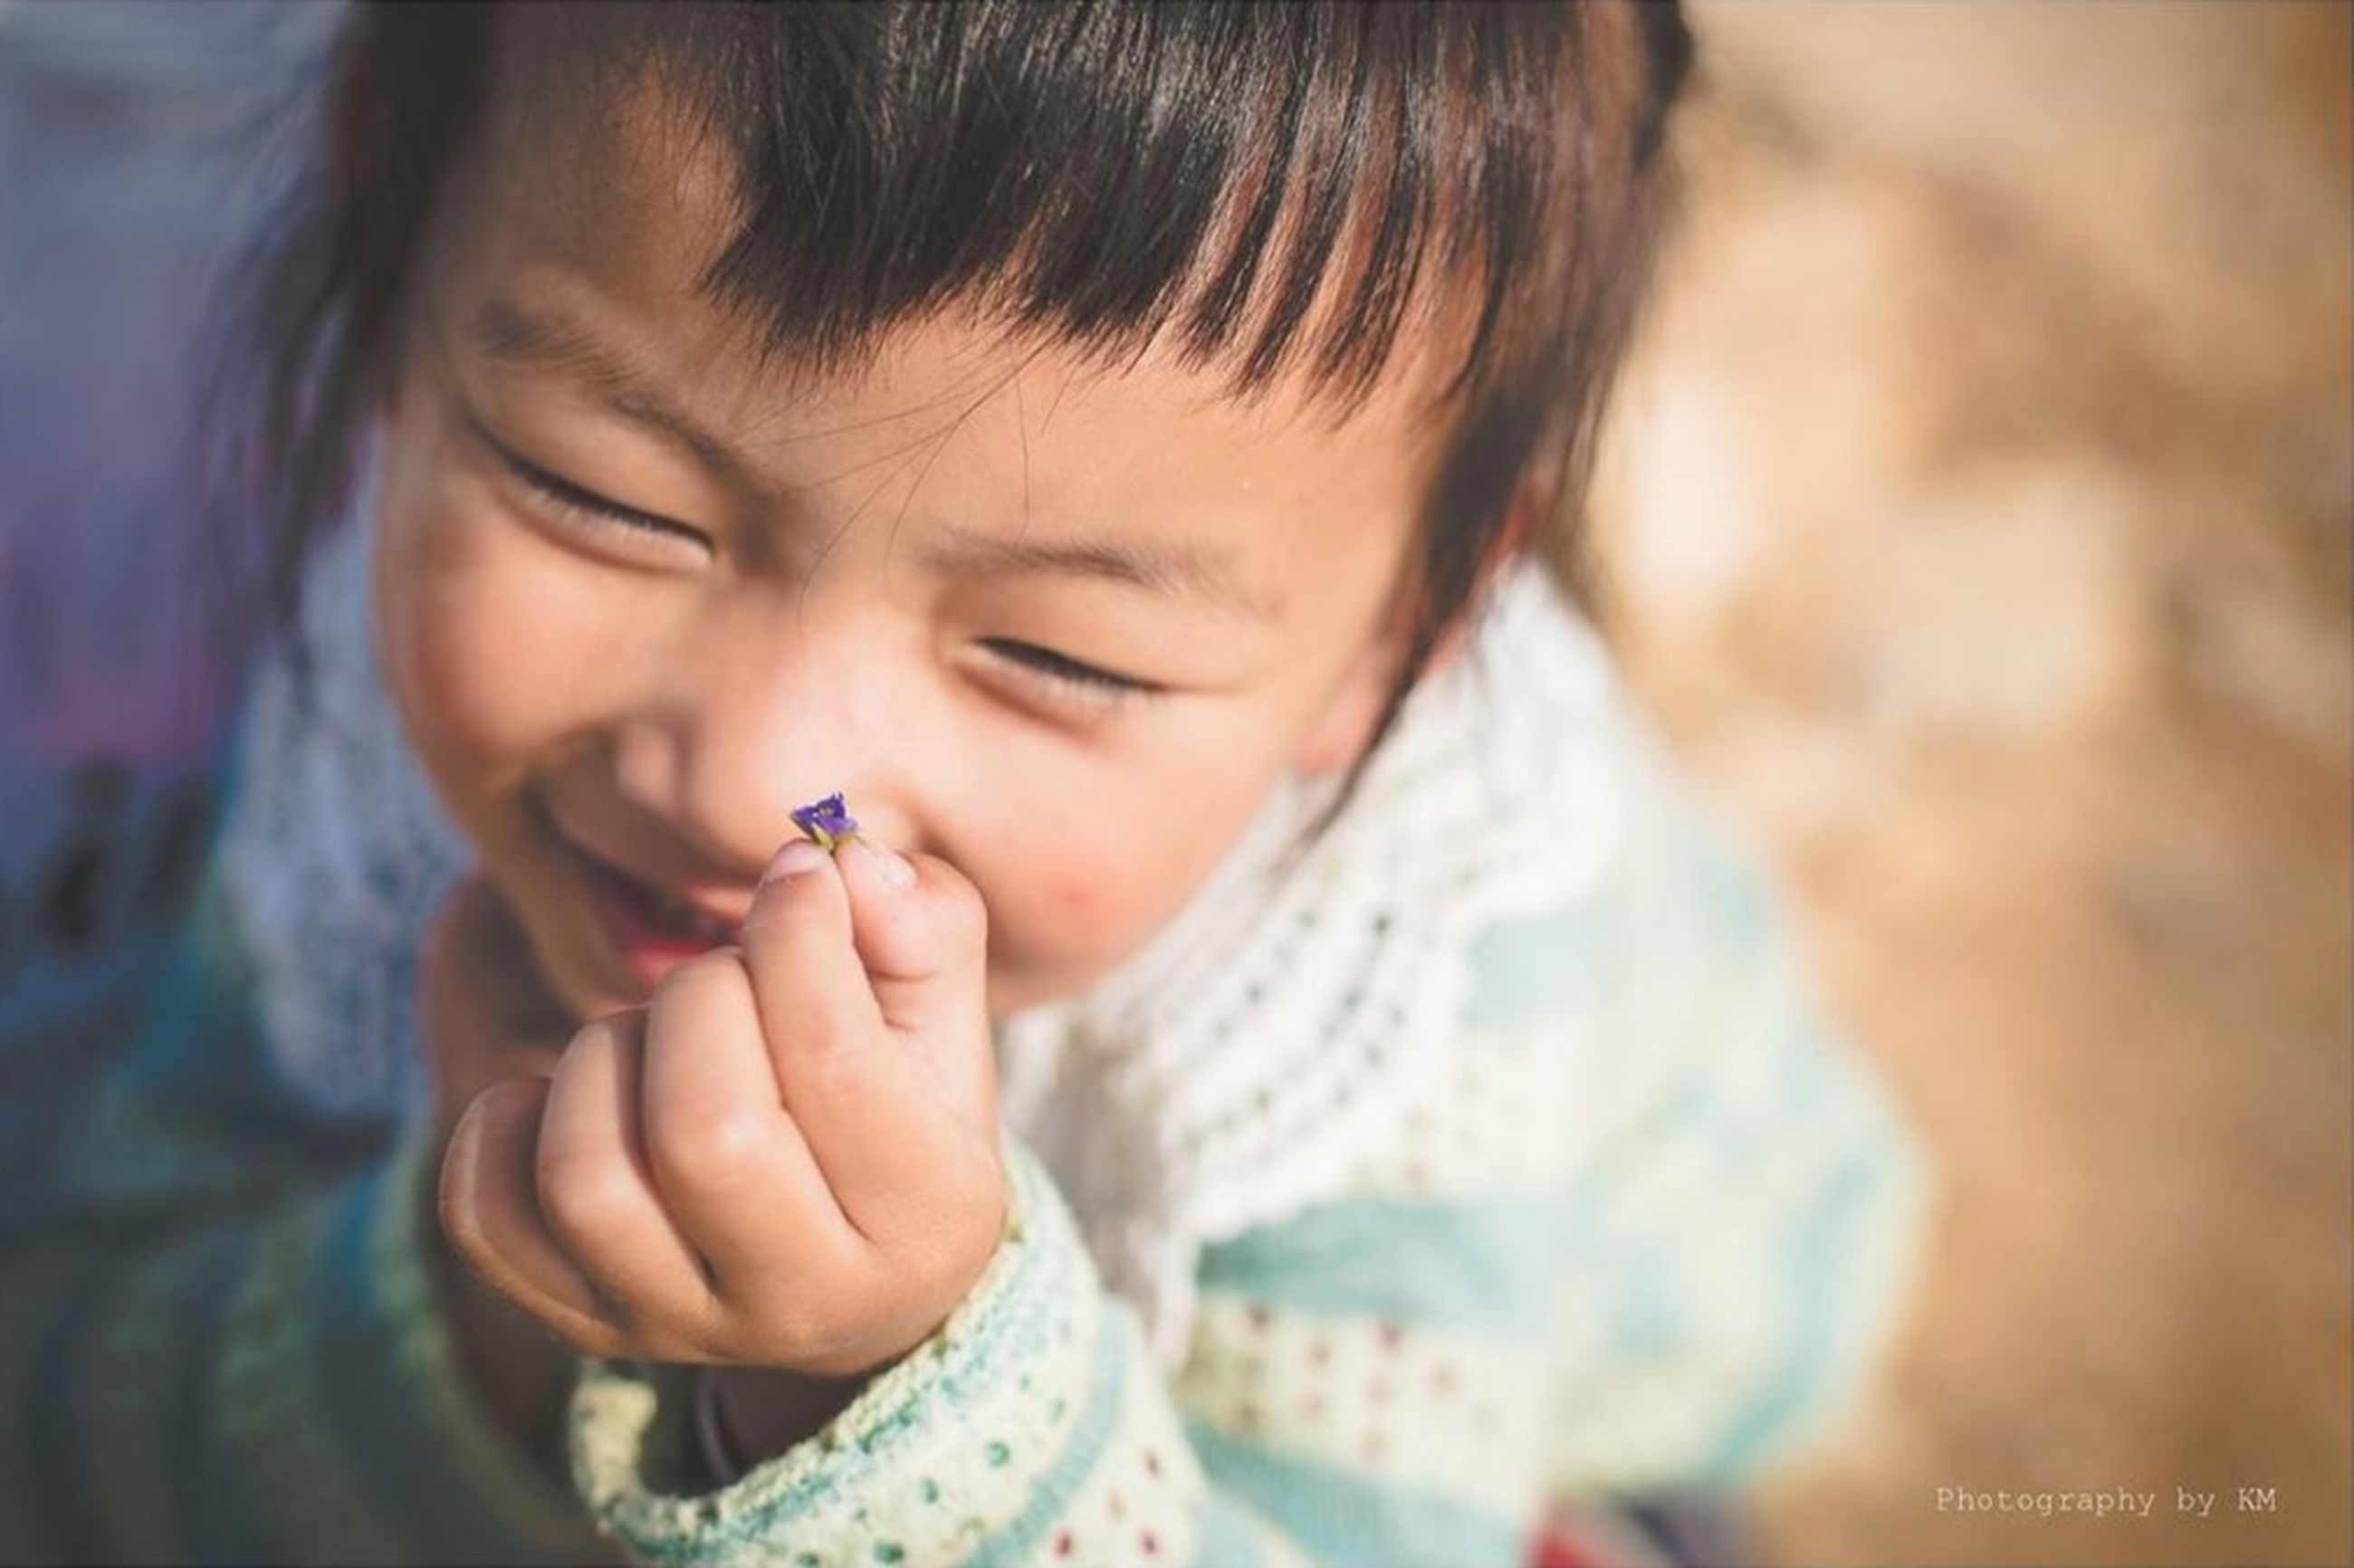 childhood, indoors, innocence, elementary age, person, lifestyles, cute, girls, headshot, focus on foreground, boys, leisure activity, close-up, casual clothing, front view, baby, toddler, babyhood